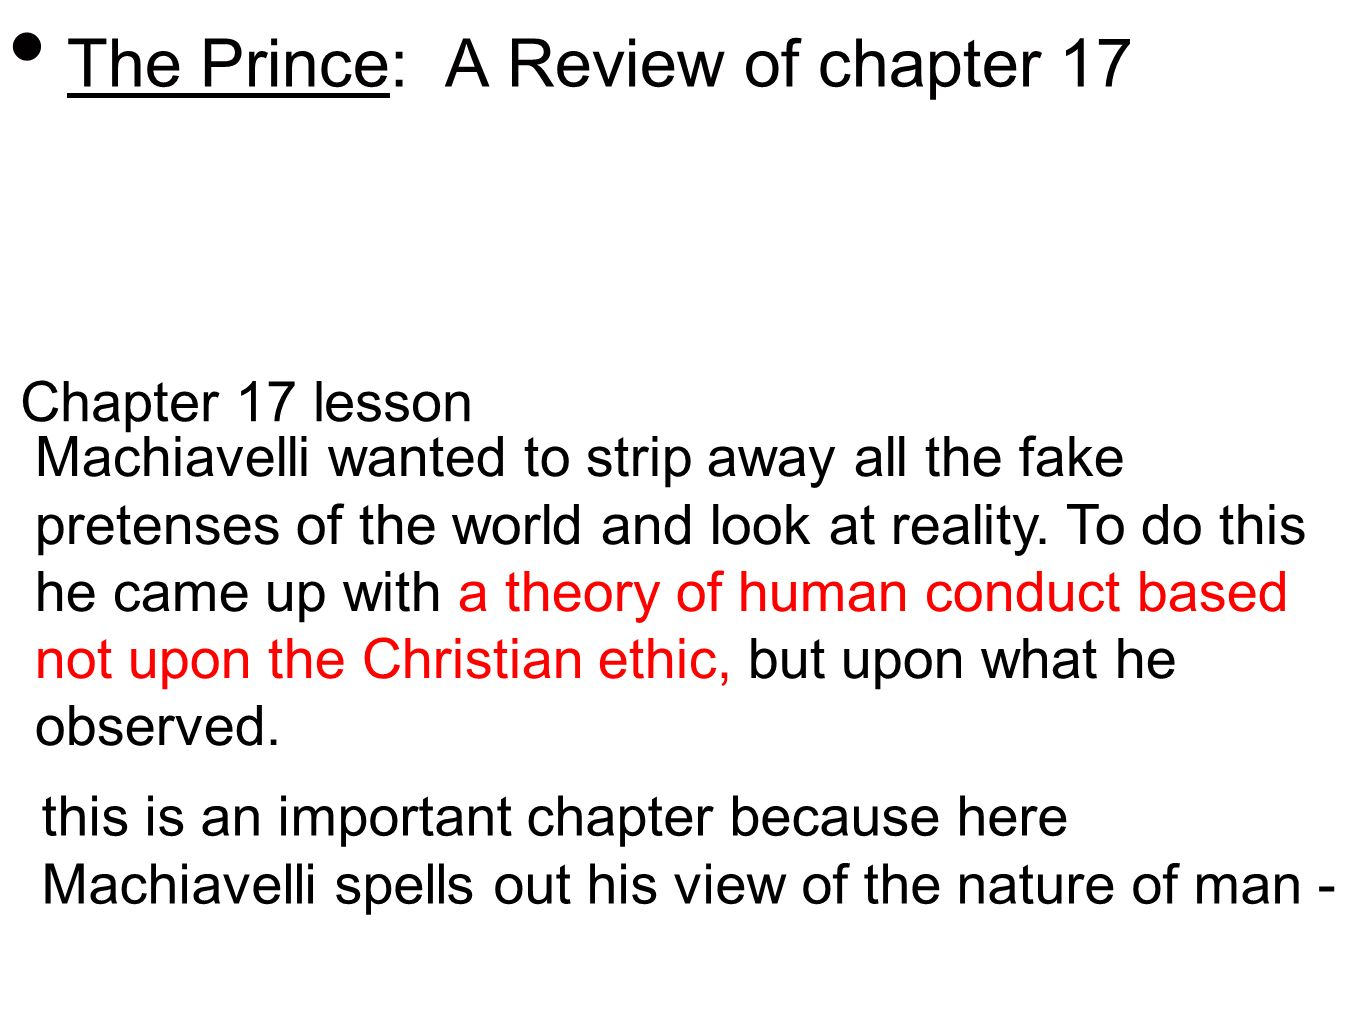 MACHIAVELLI'S VIEW OF HUMAN NATURE